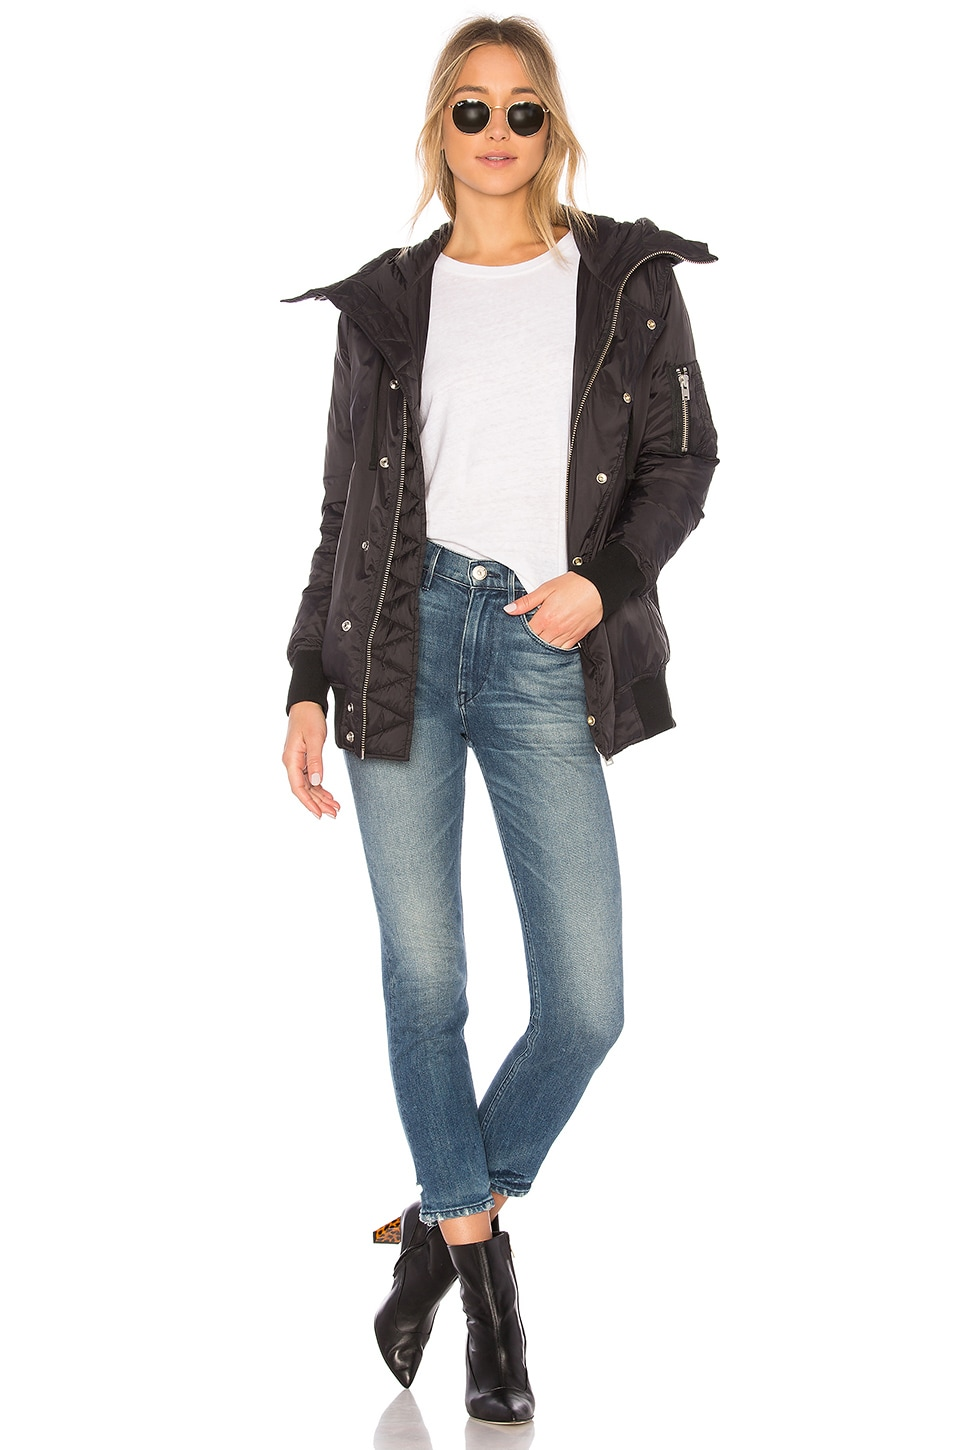 Gygy Jacket by IRO . JEANS